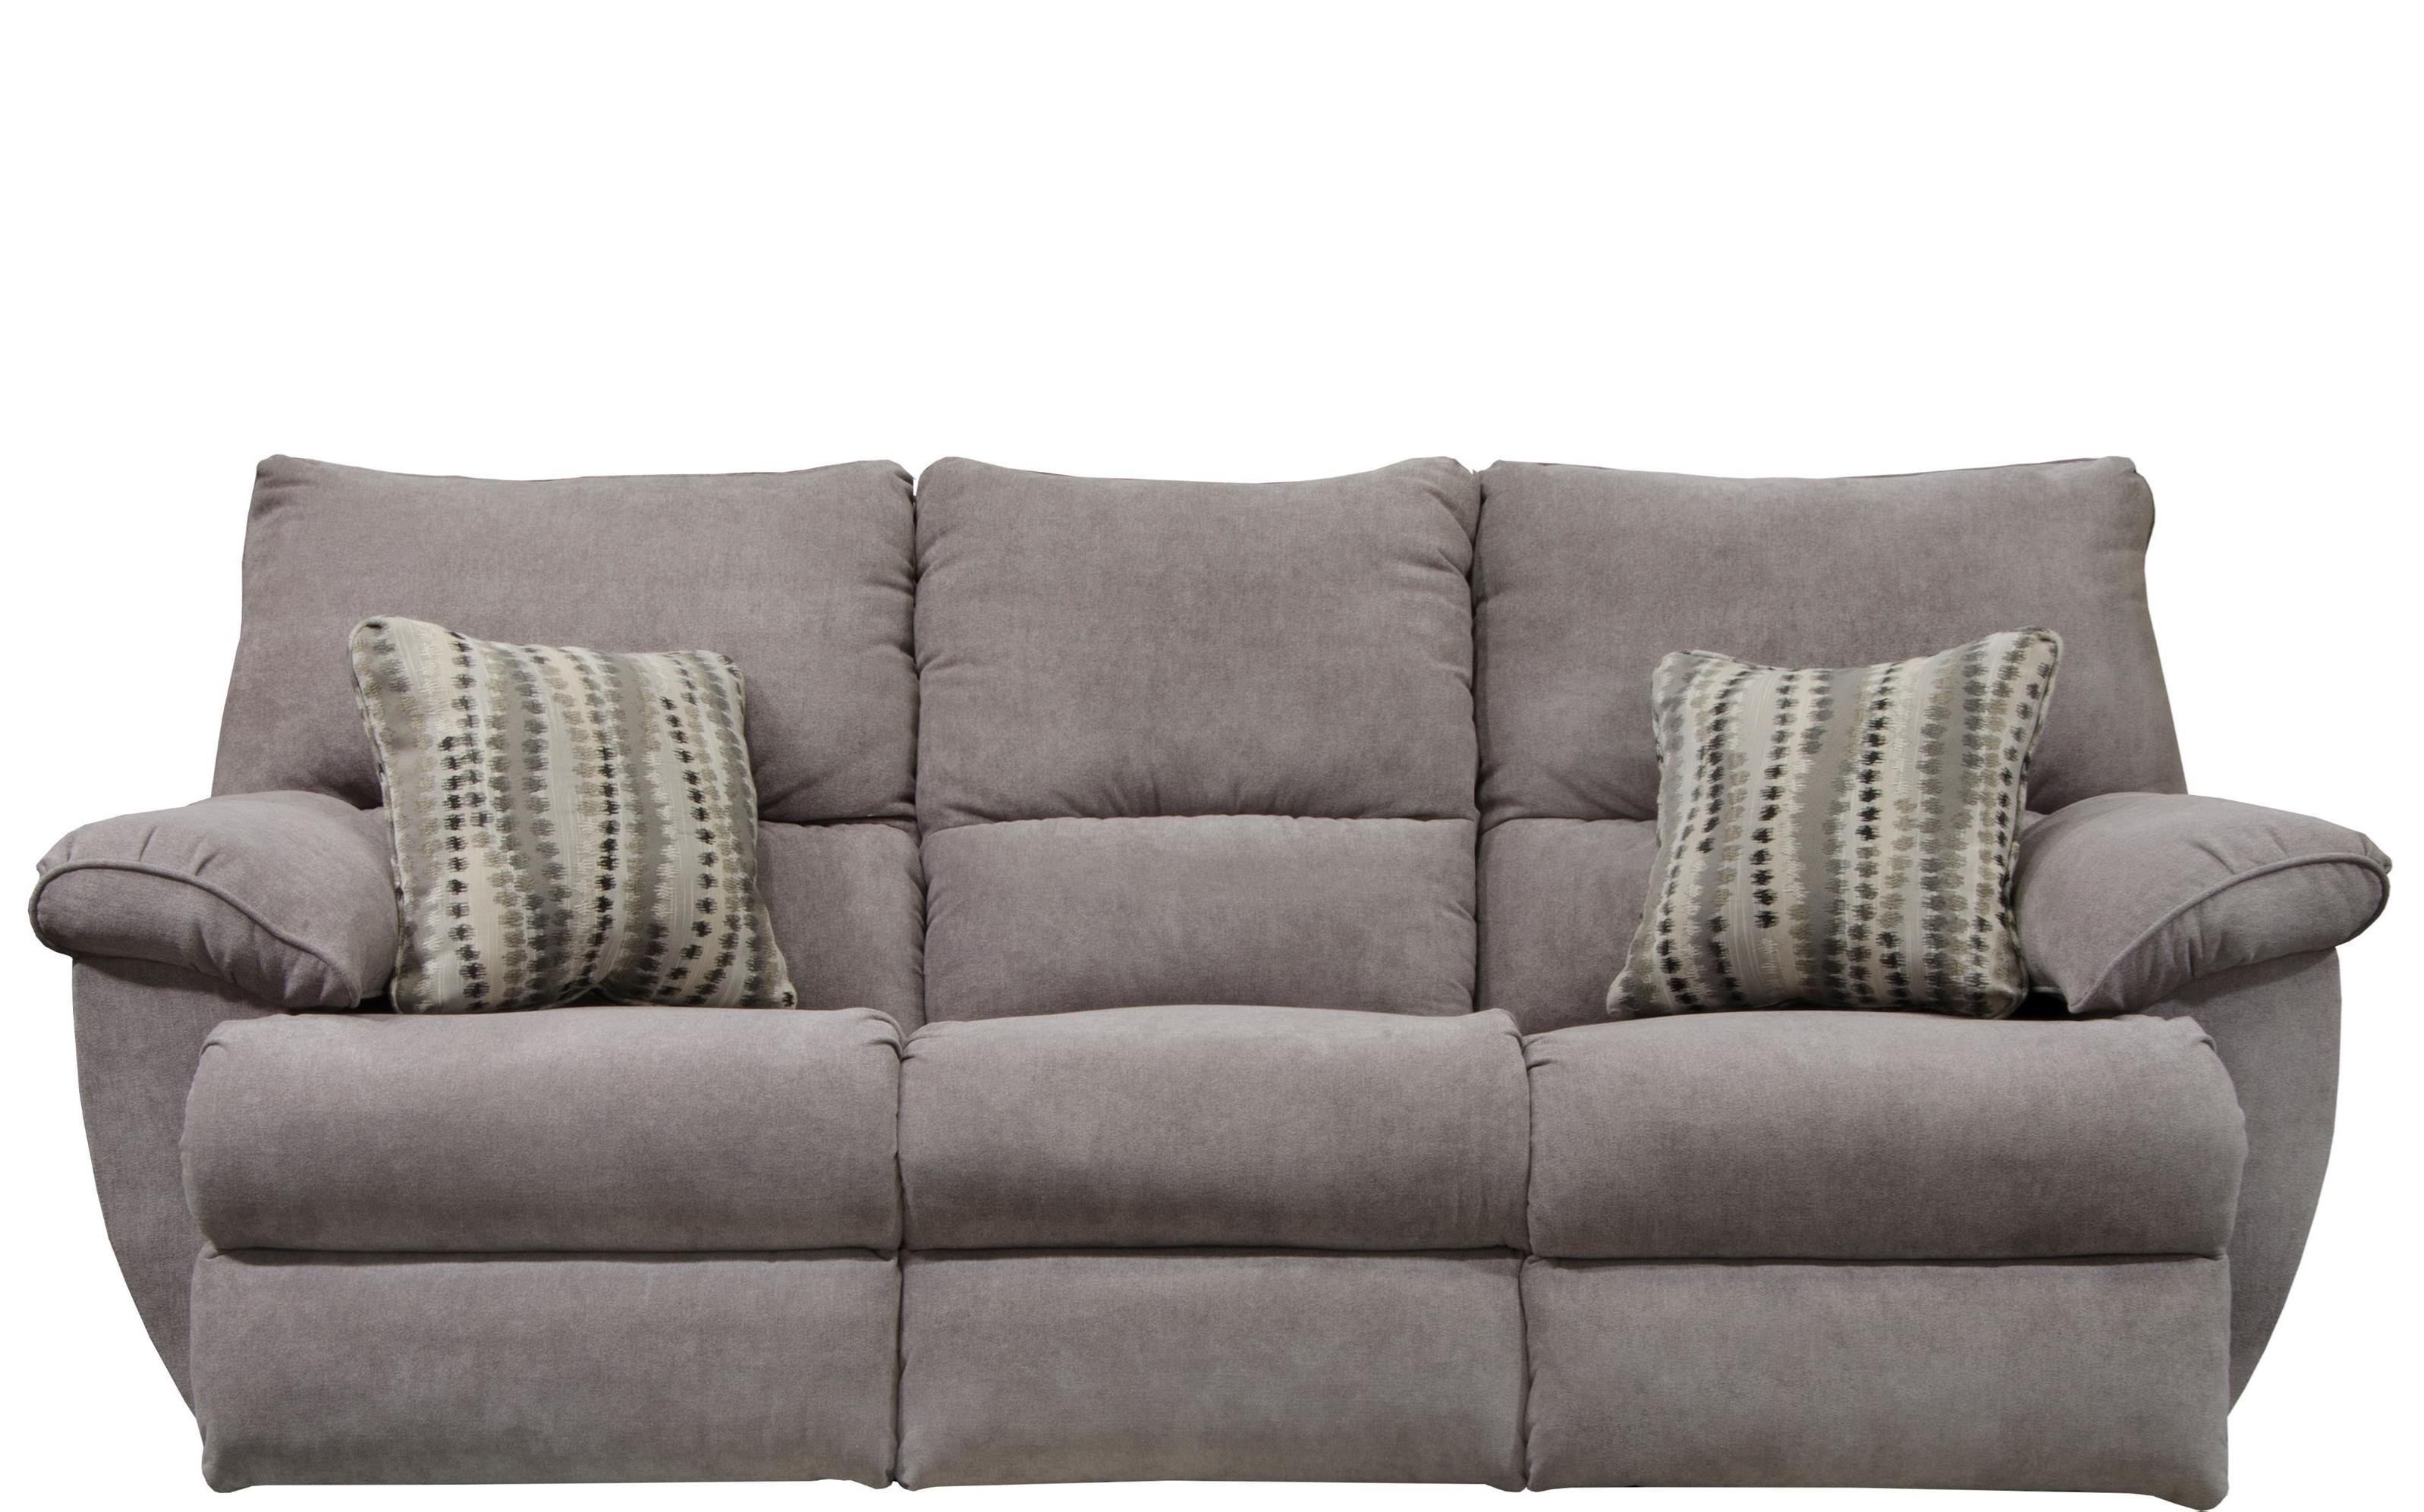 Catnapper Sadler Lay Flat Reclining Sofa With Drop Down Table Lindy S Furniture Company Reclining Sofas